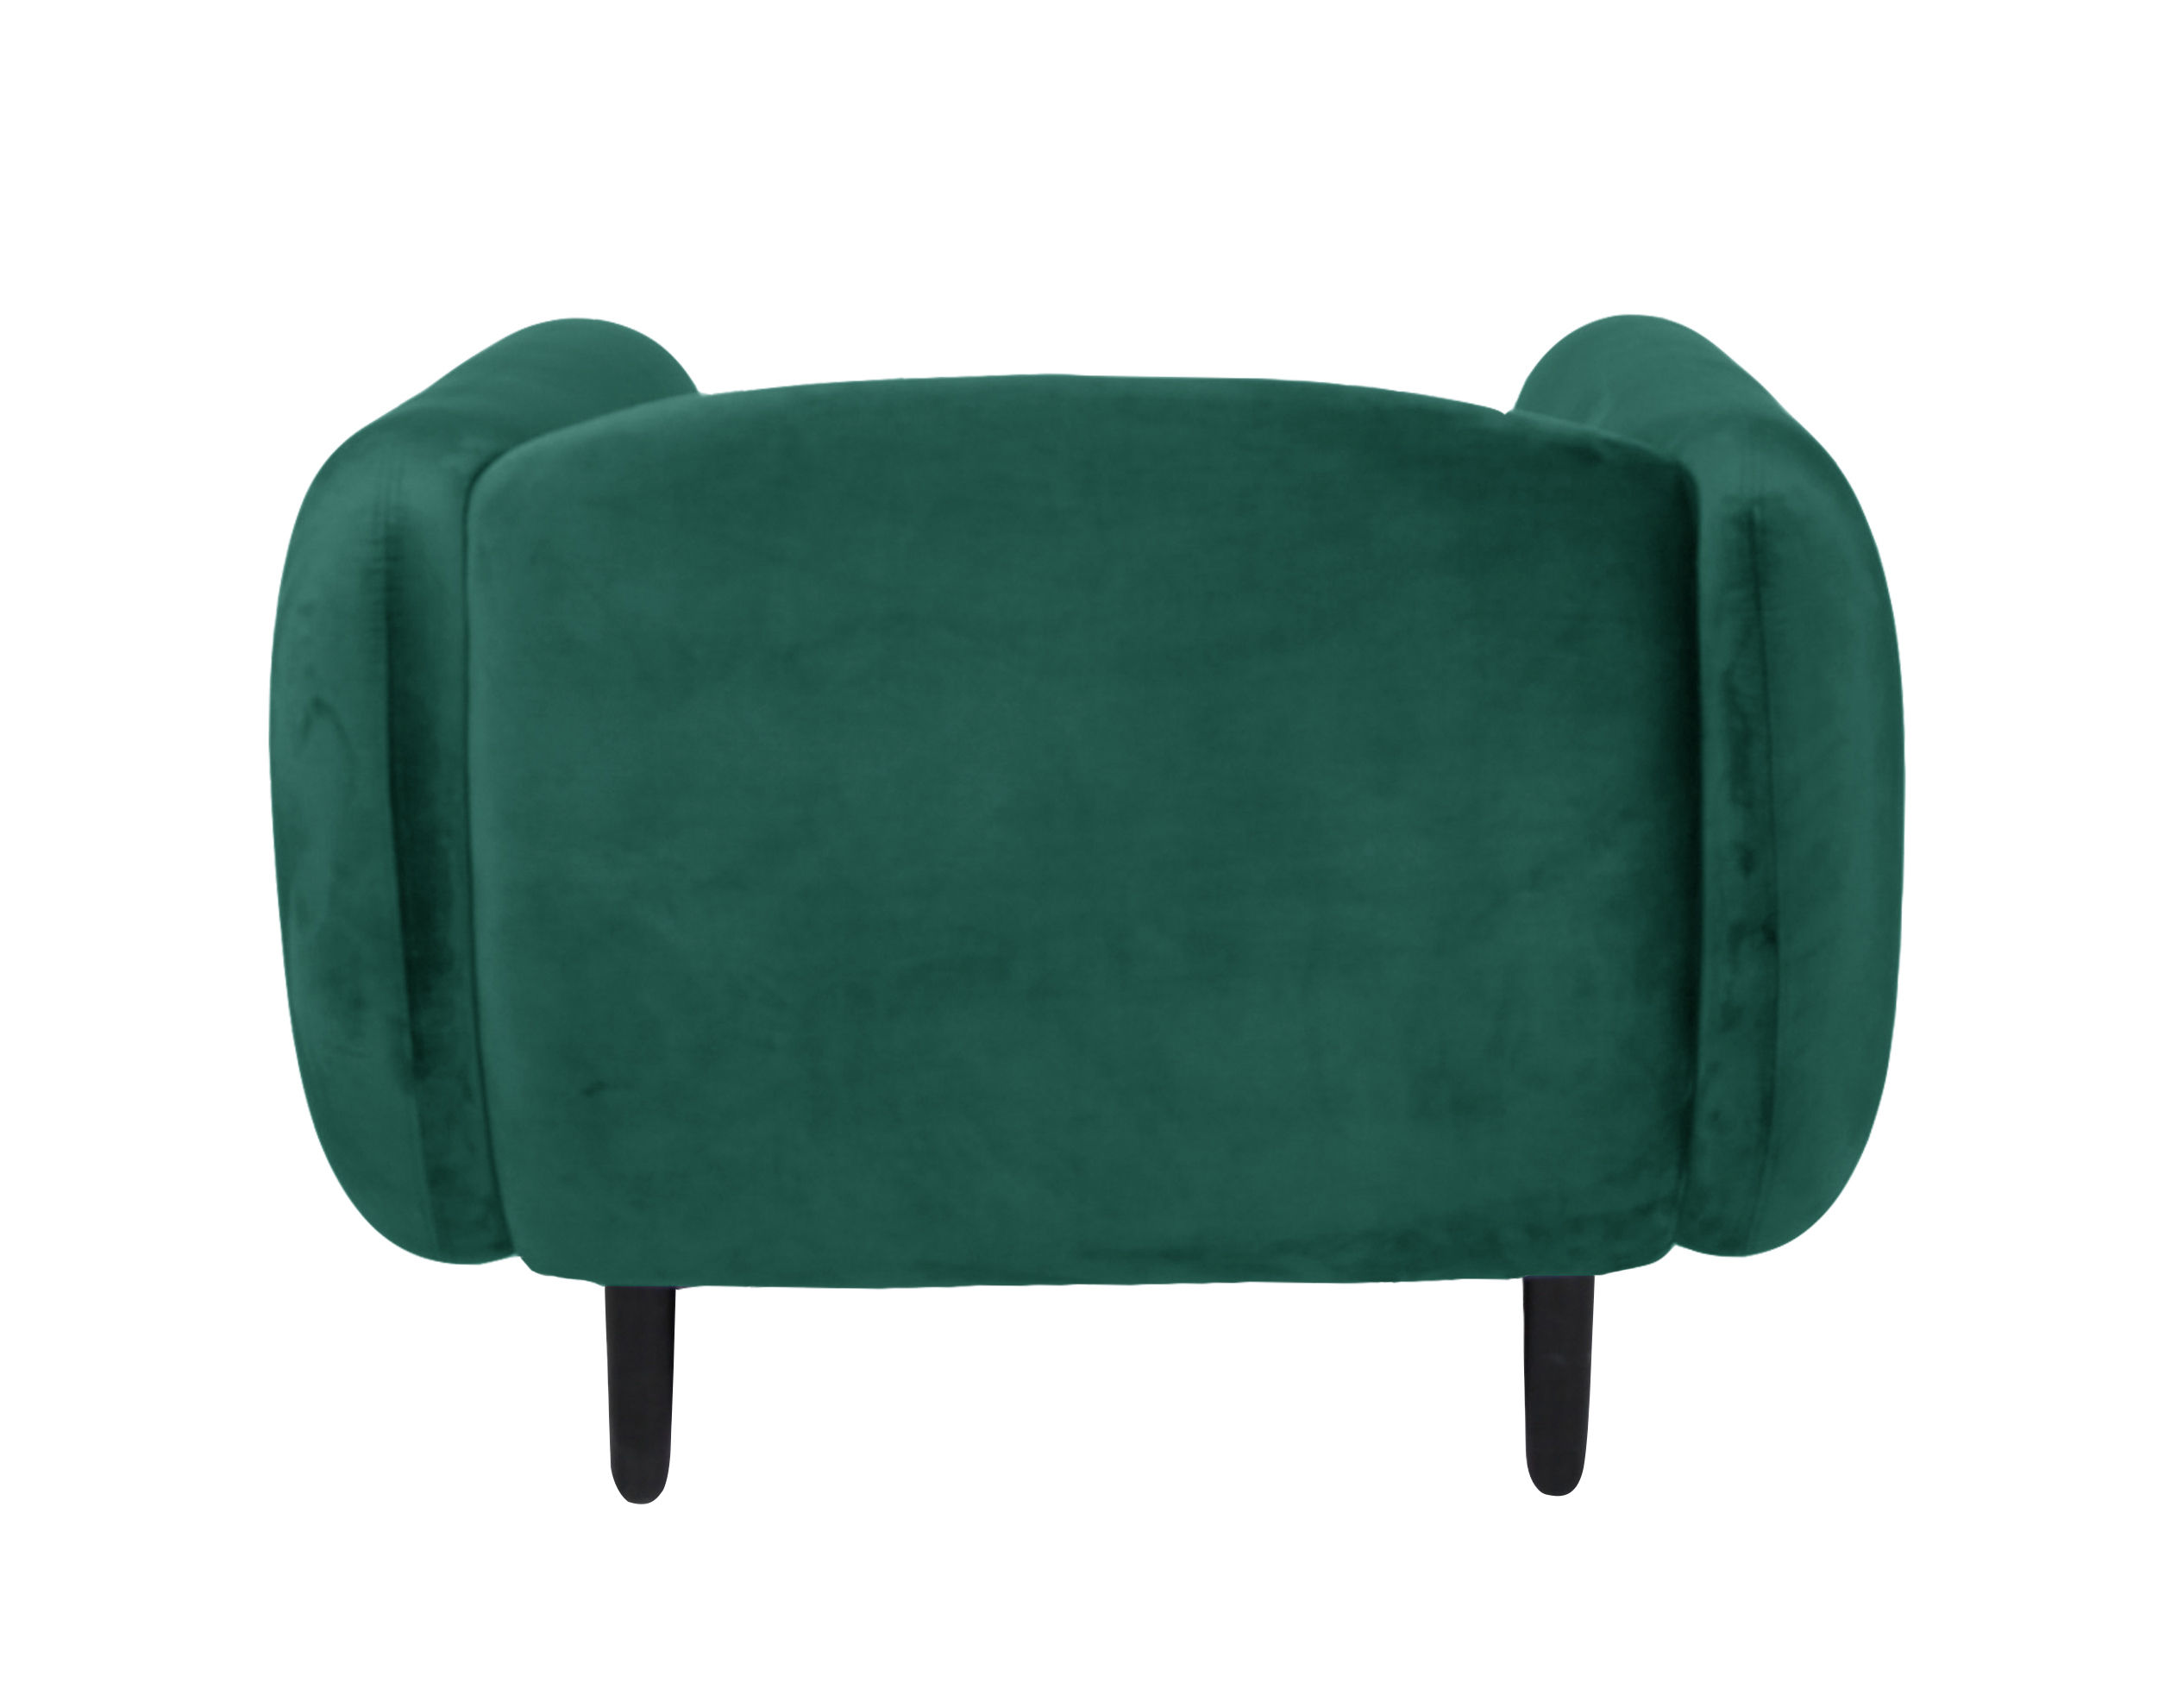 fauteuil rembourr mo ra velours velours vert canard enostudio made in design. Black Bedroom Furniture Sets. Home Design Ideas